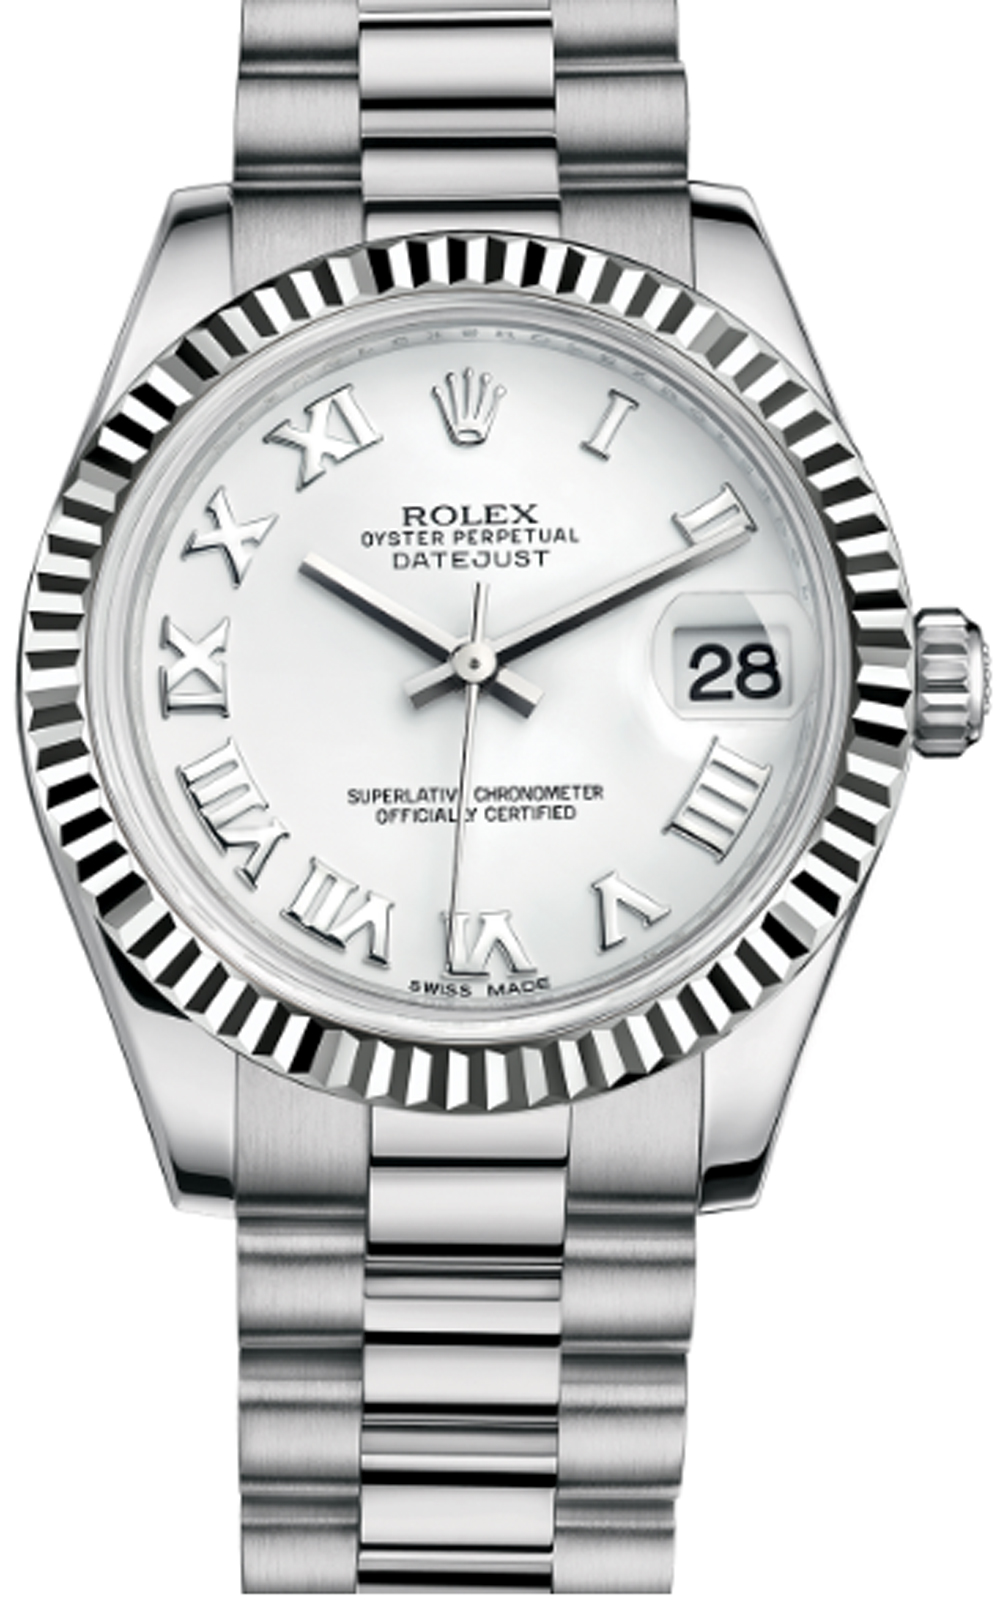 Đồng hồ Rolex Lady-datejust white gold 178279-0067, 31mm